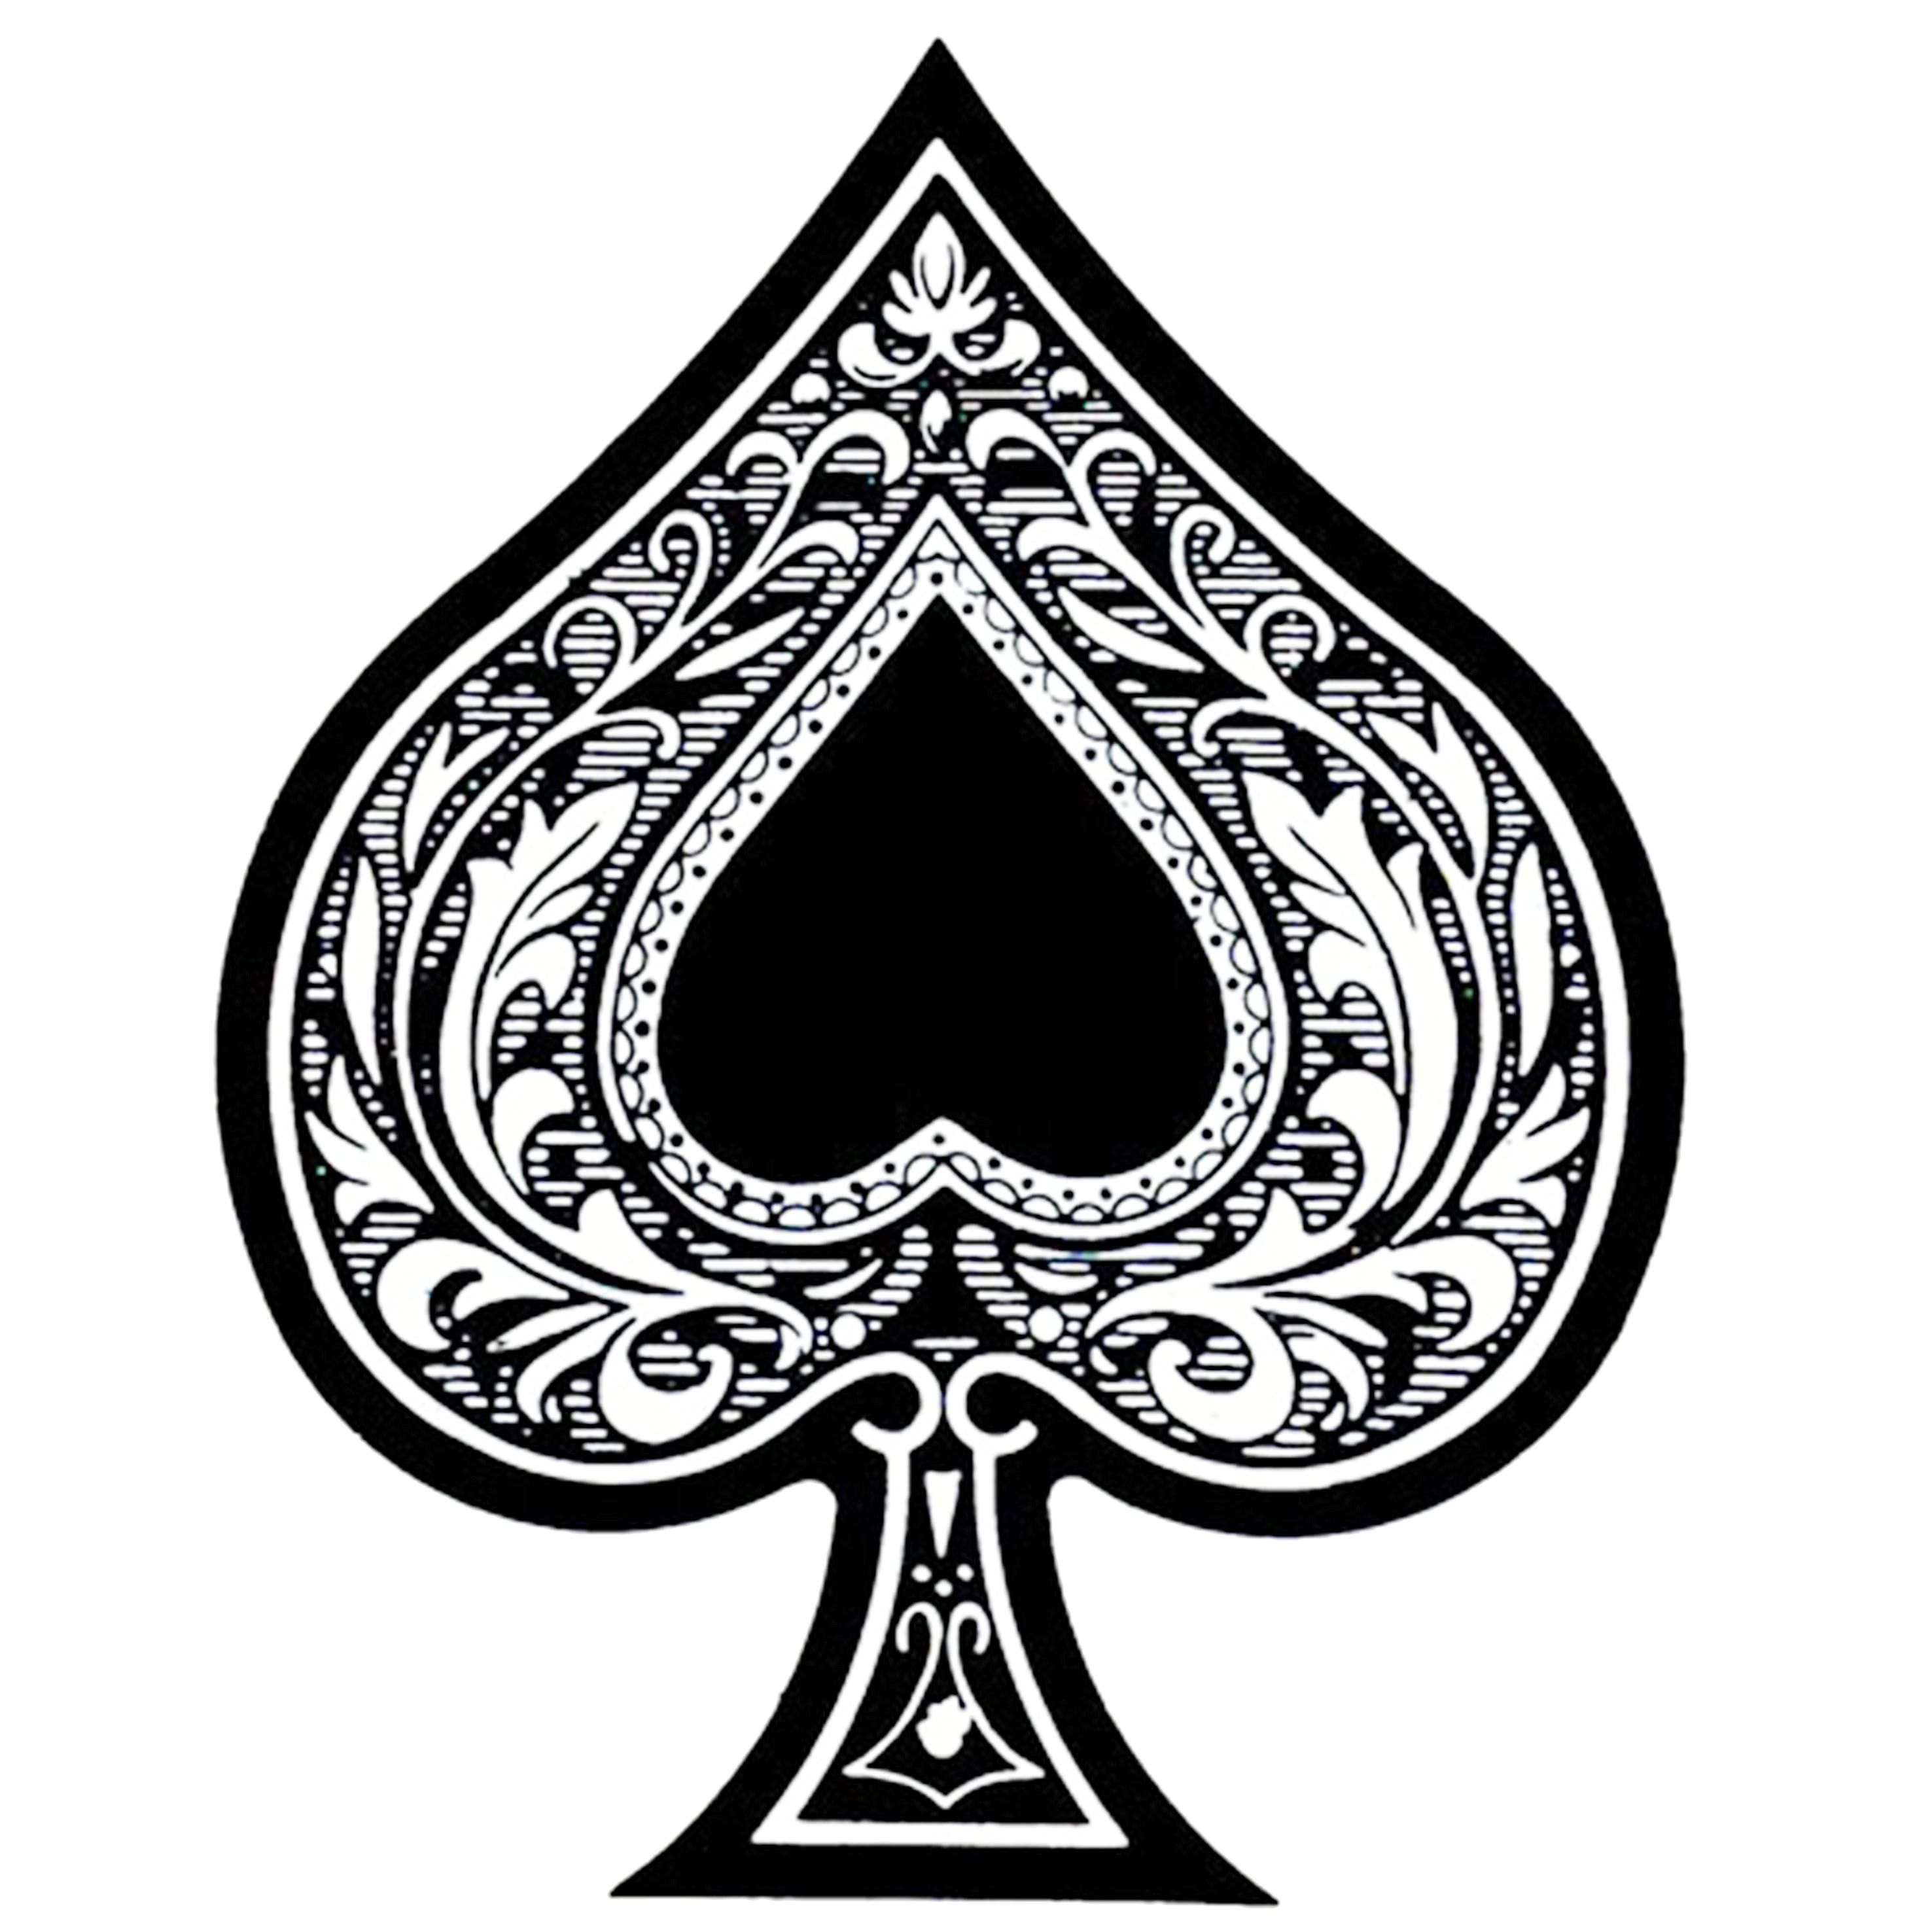 bf3134641 NOVA ESTAMPA ACE OF SPADES   The Ace Of Spades in 2019   Ace of ...